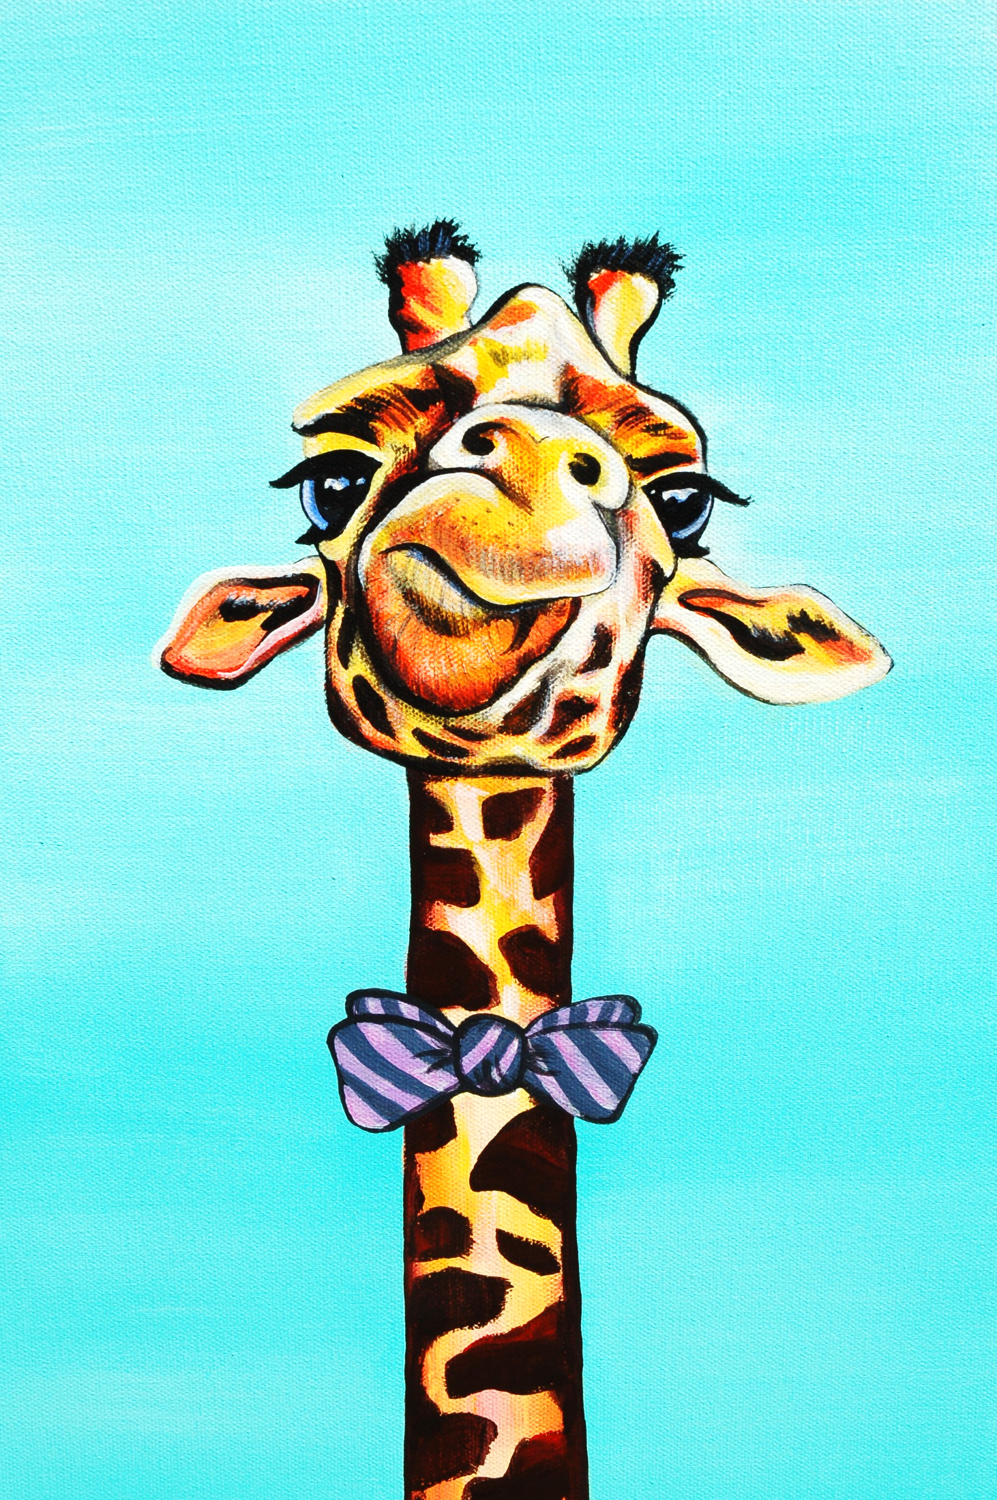 Gerald the Giraffe painting